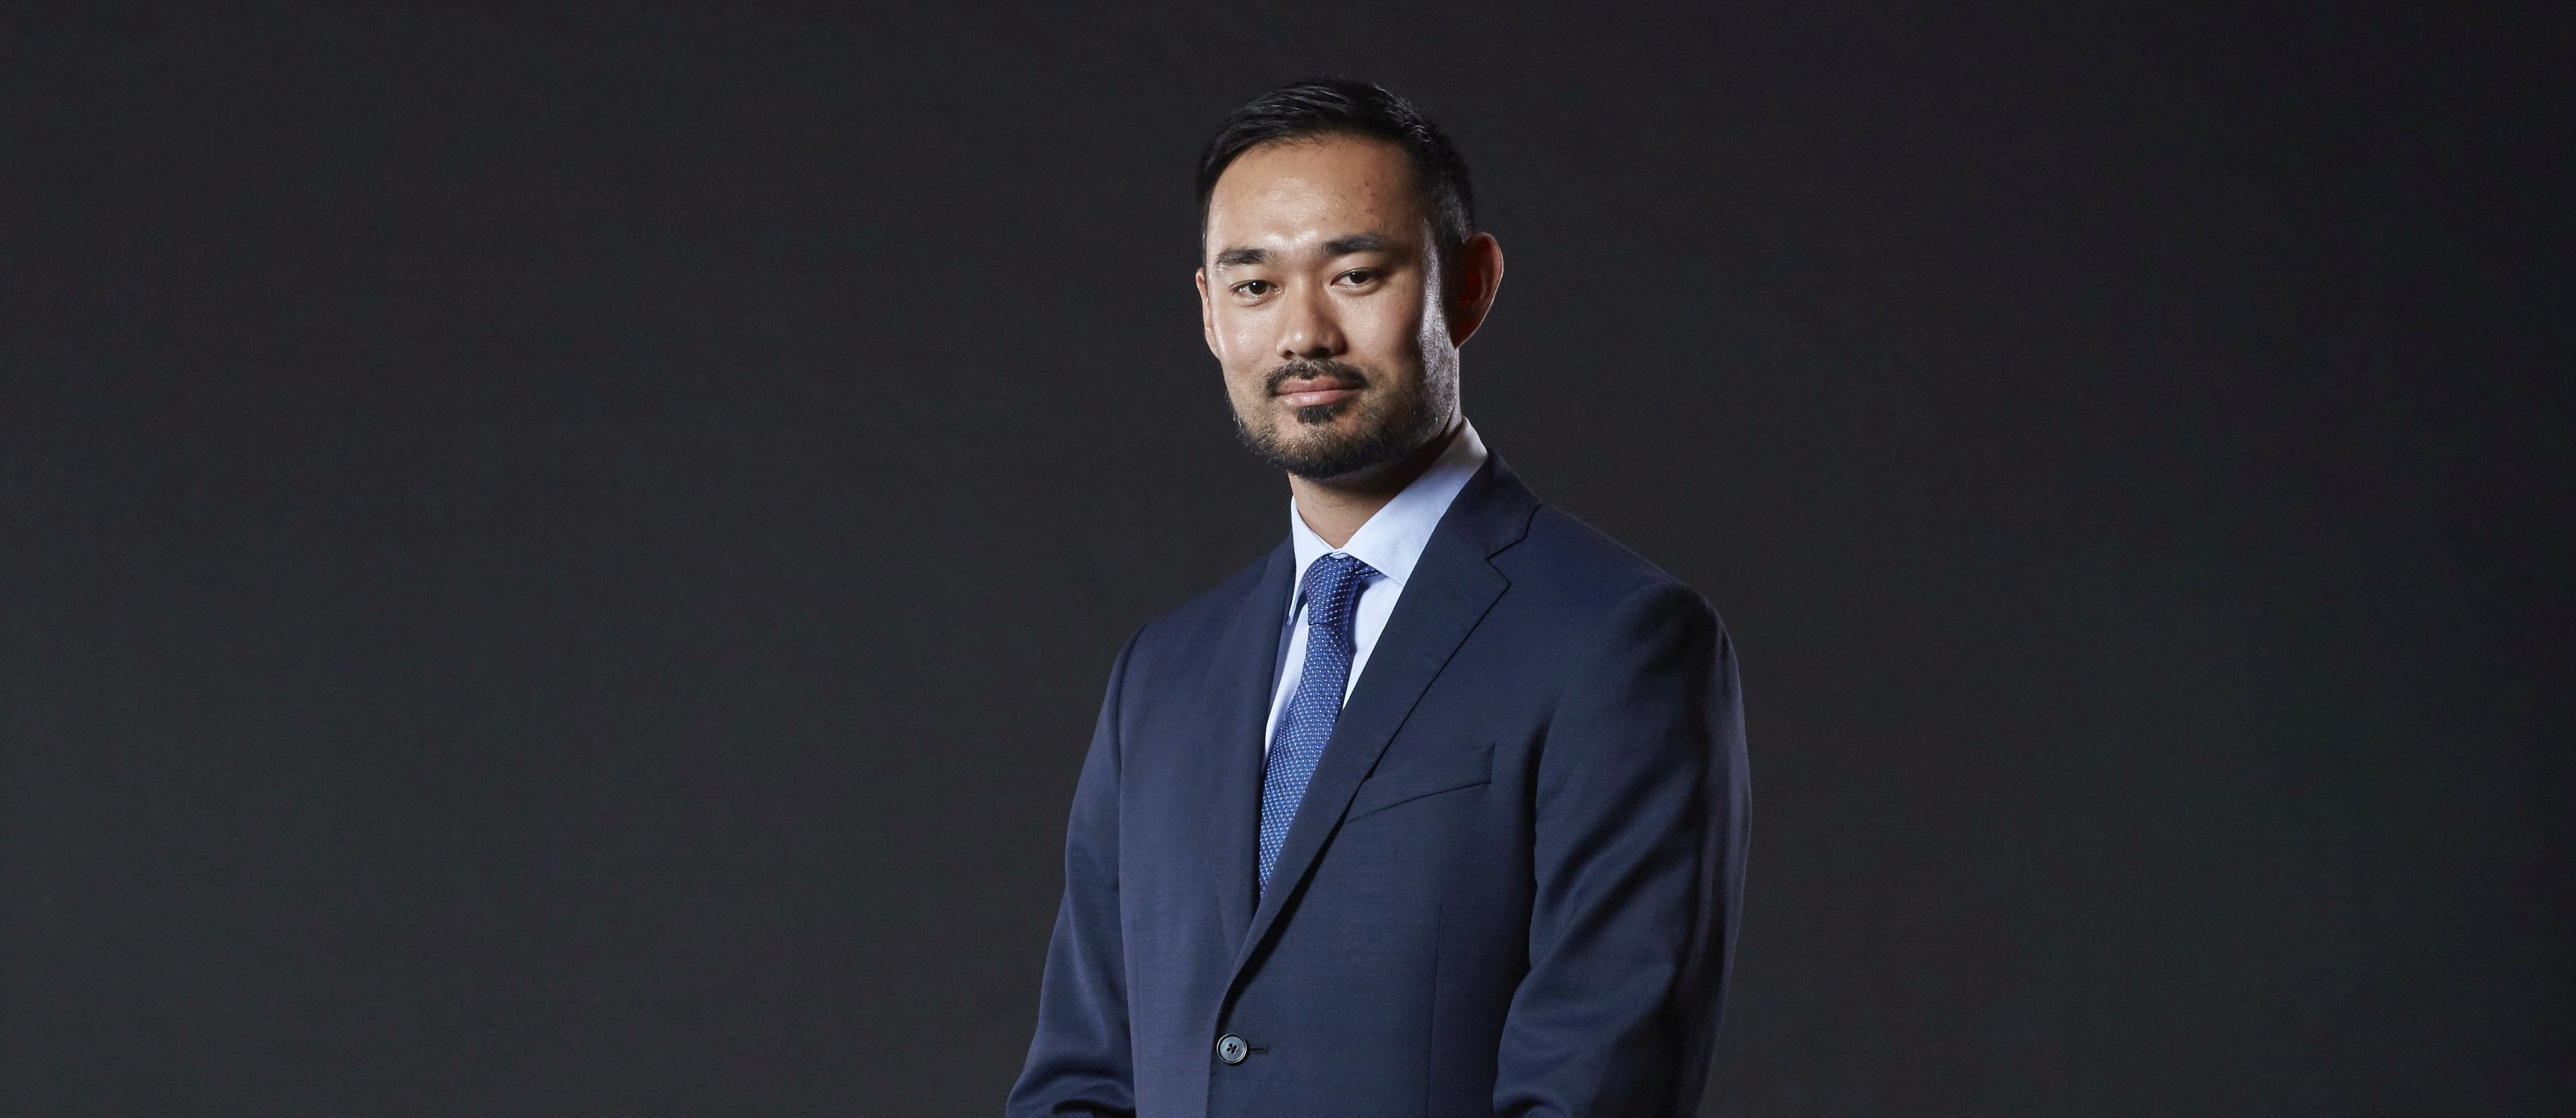 Cho assumes role of Commissioner and CEO